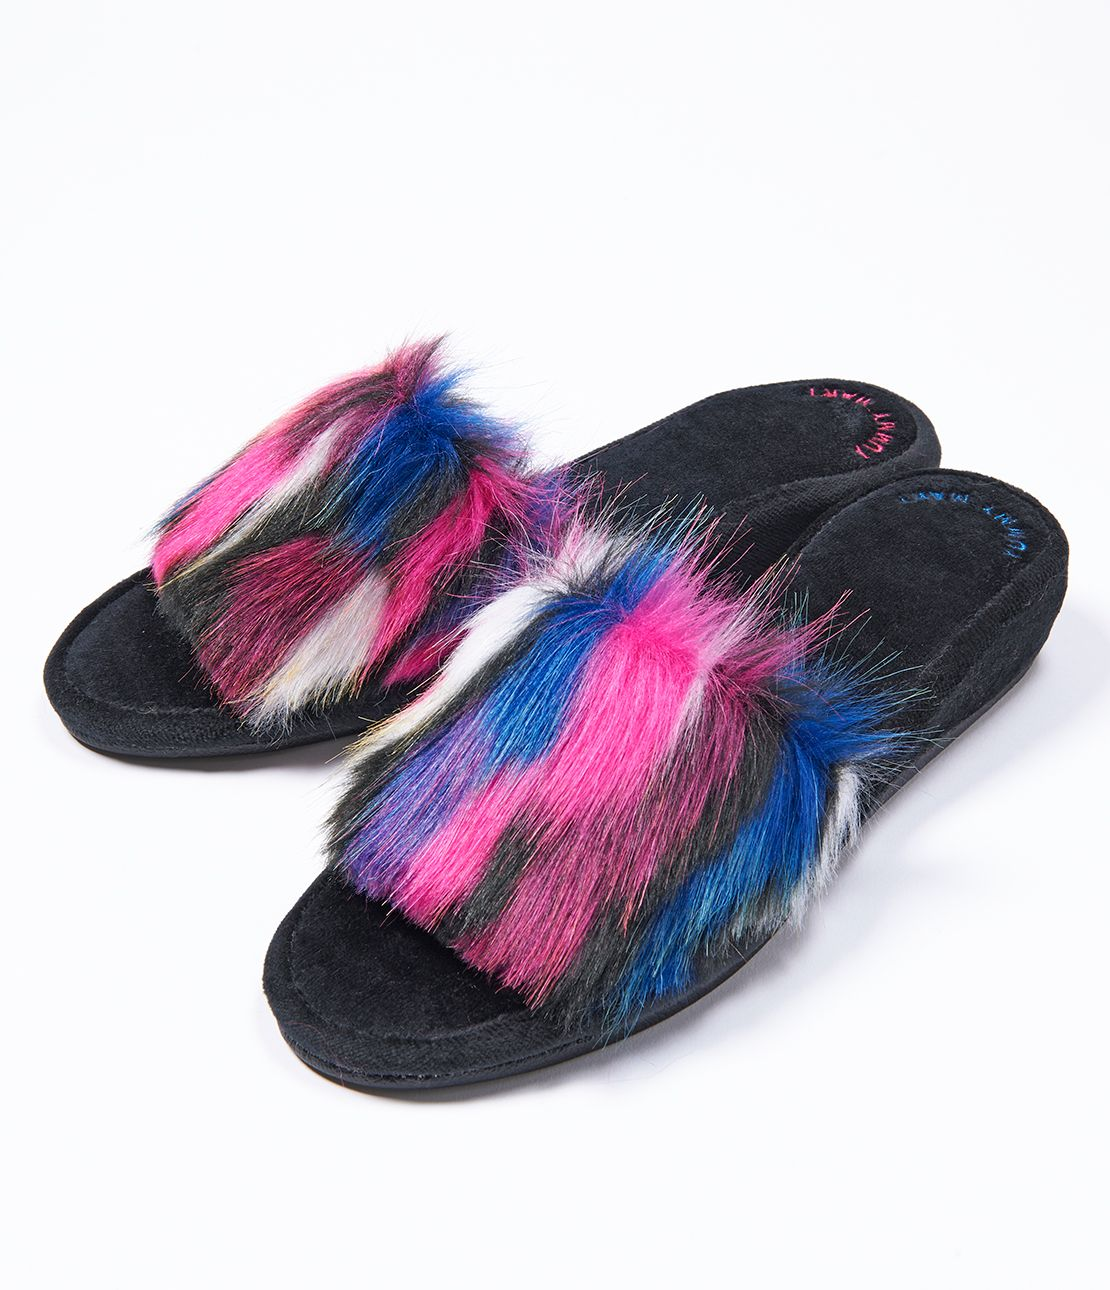 YM fake fur slippers